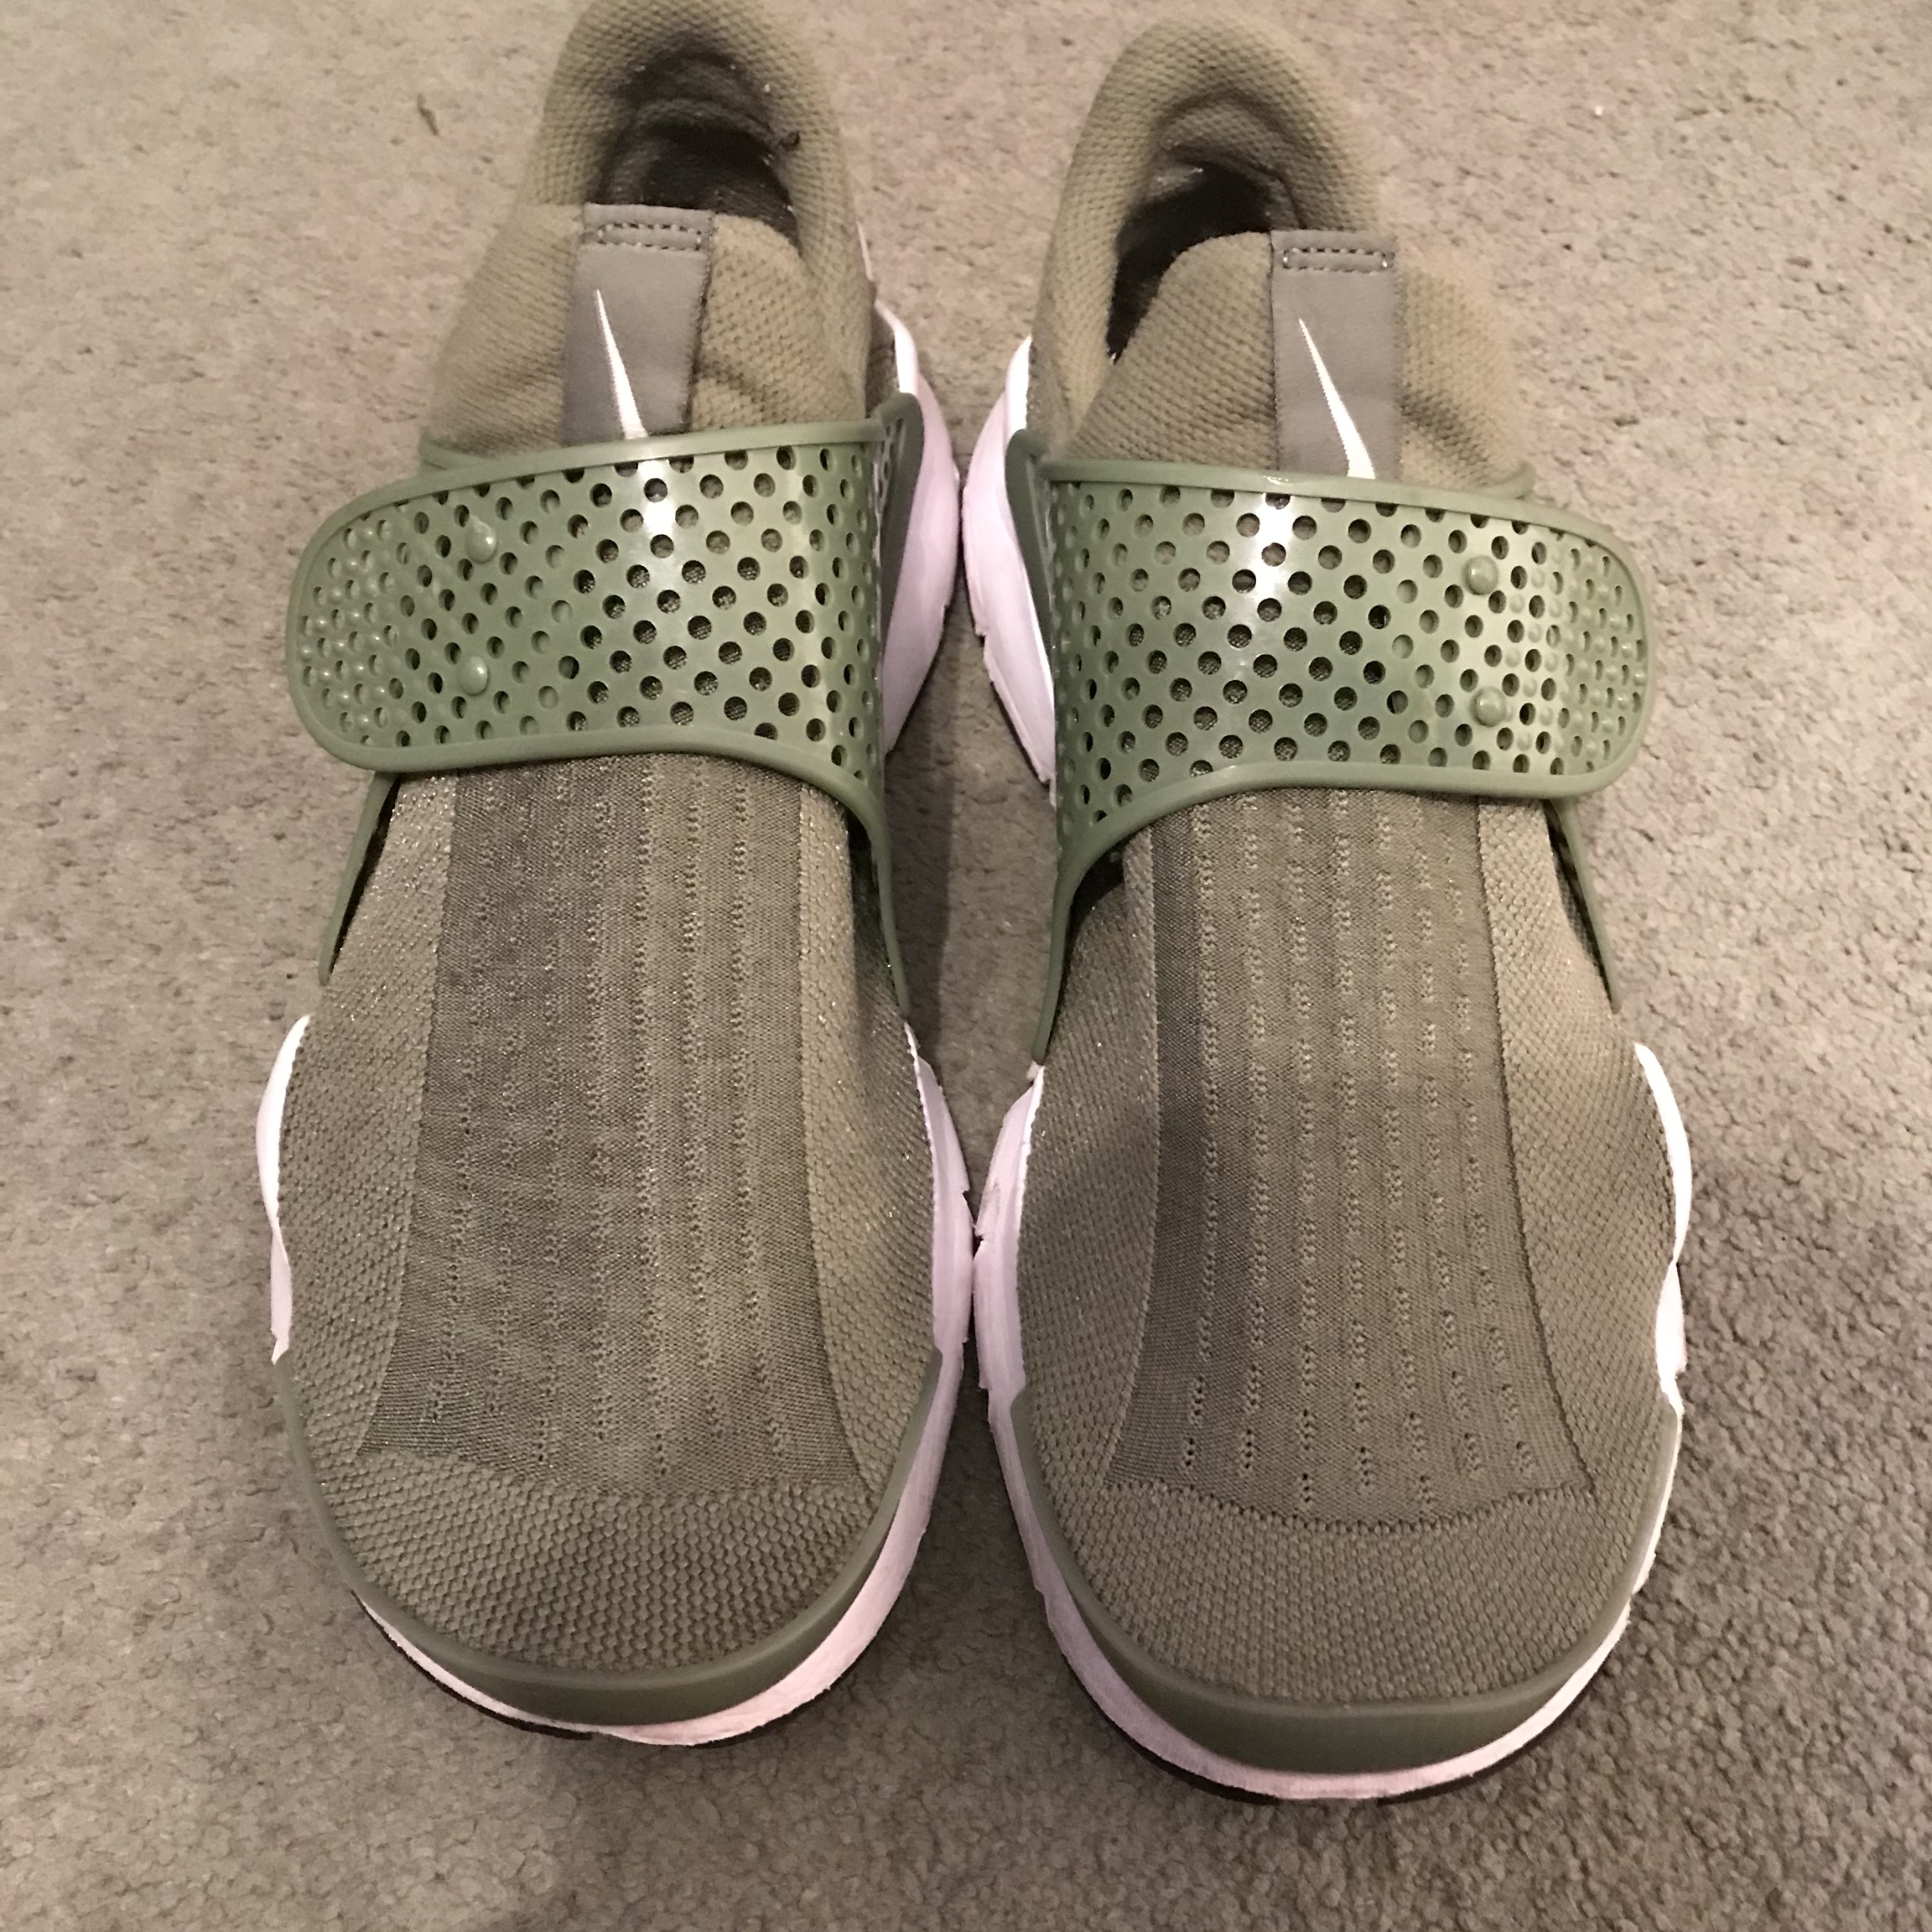 Arrostito alieno senso  Nike Sock Dart Olive Green Only worn a handful of... - Depop